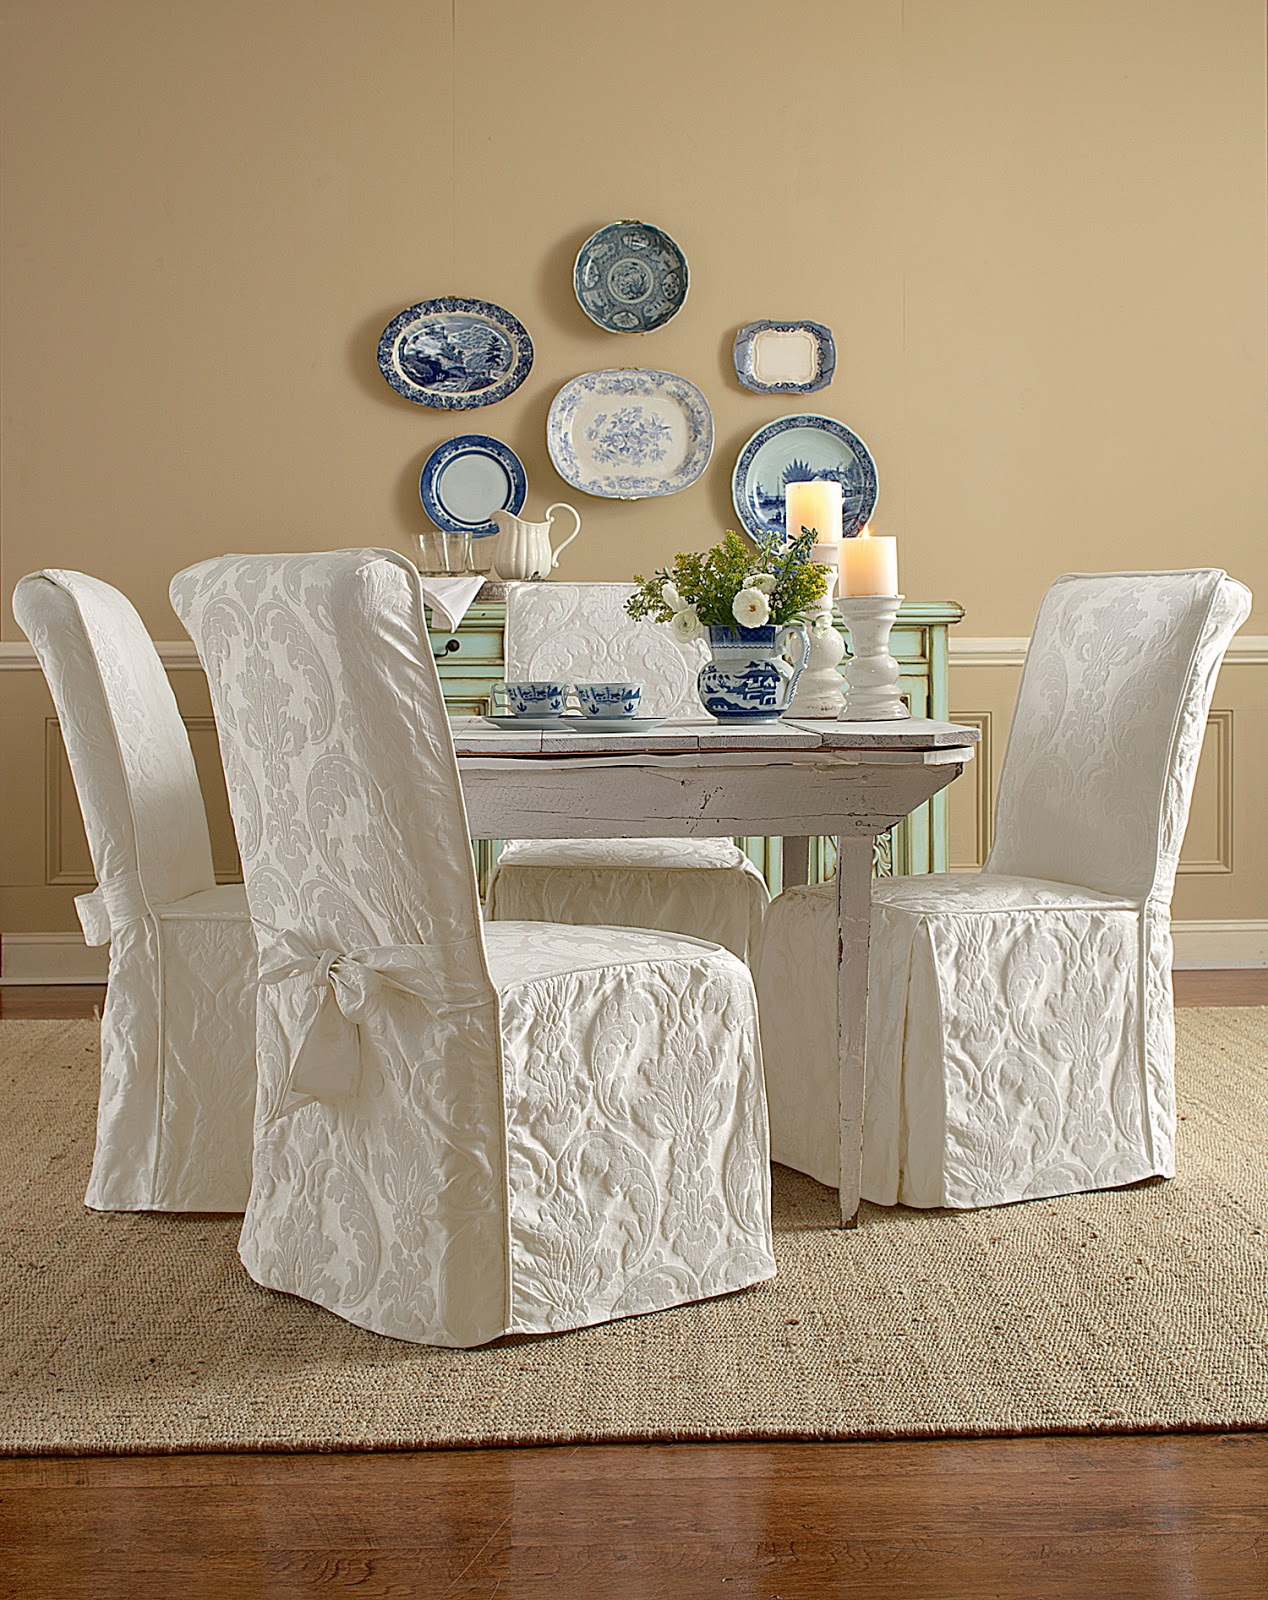 View Images Waverly Garden Room Dining Chair Covers Myideasbedroom